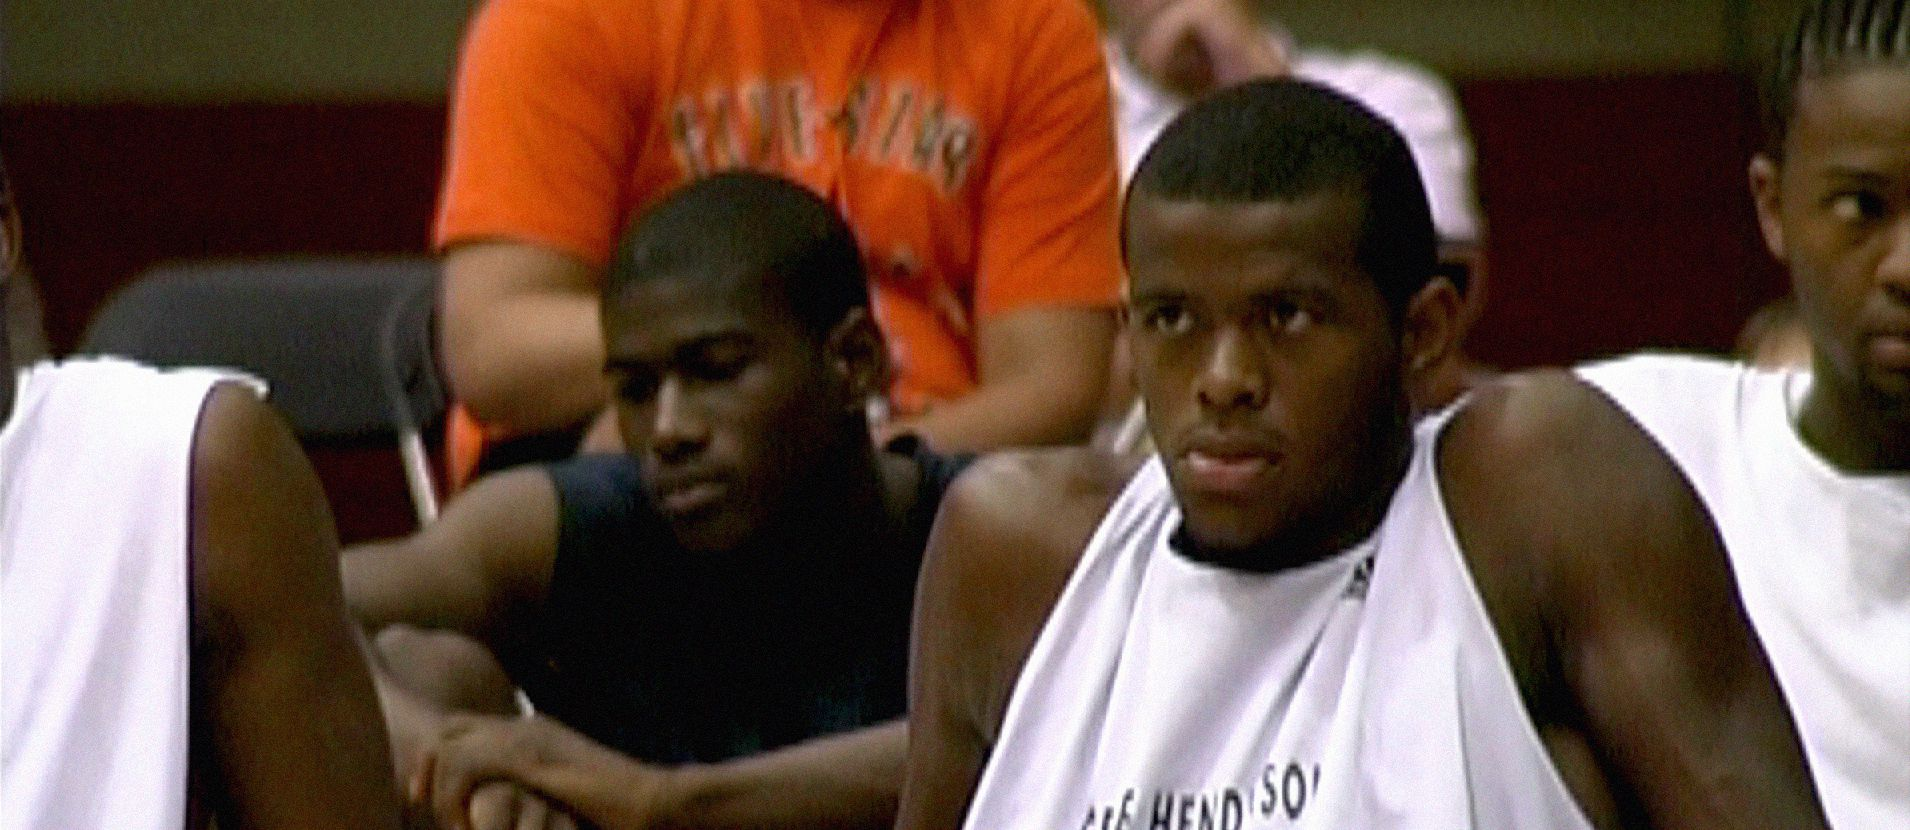 An image from Lenny Cooke